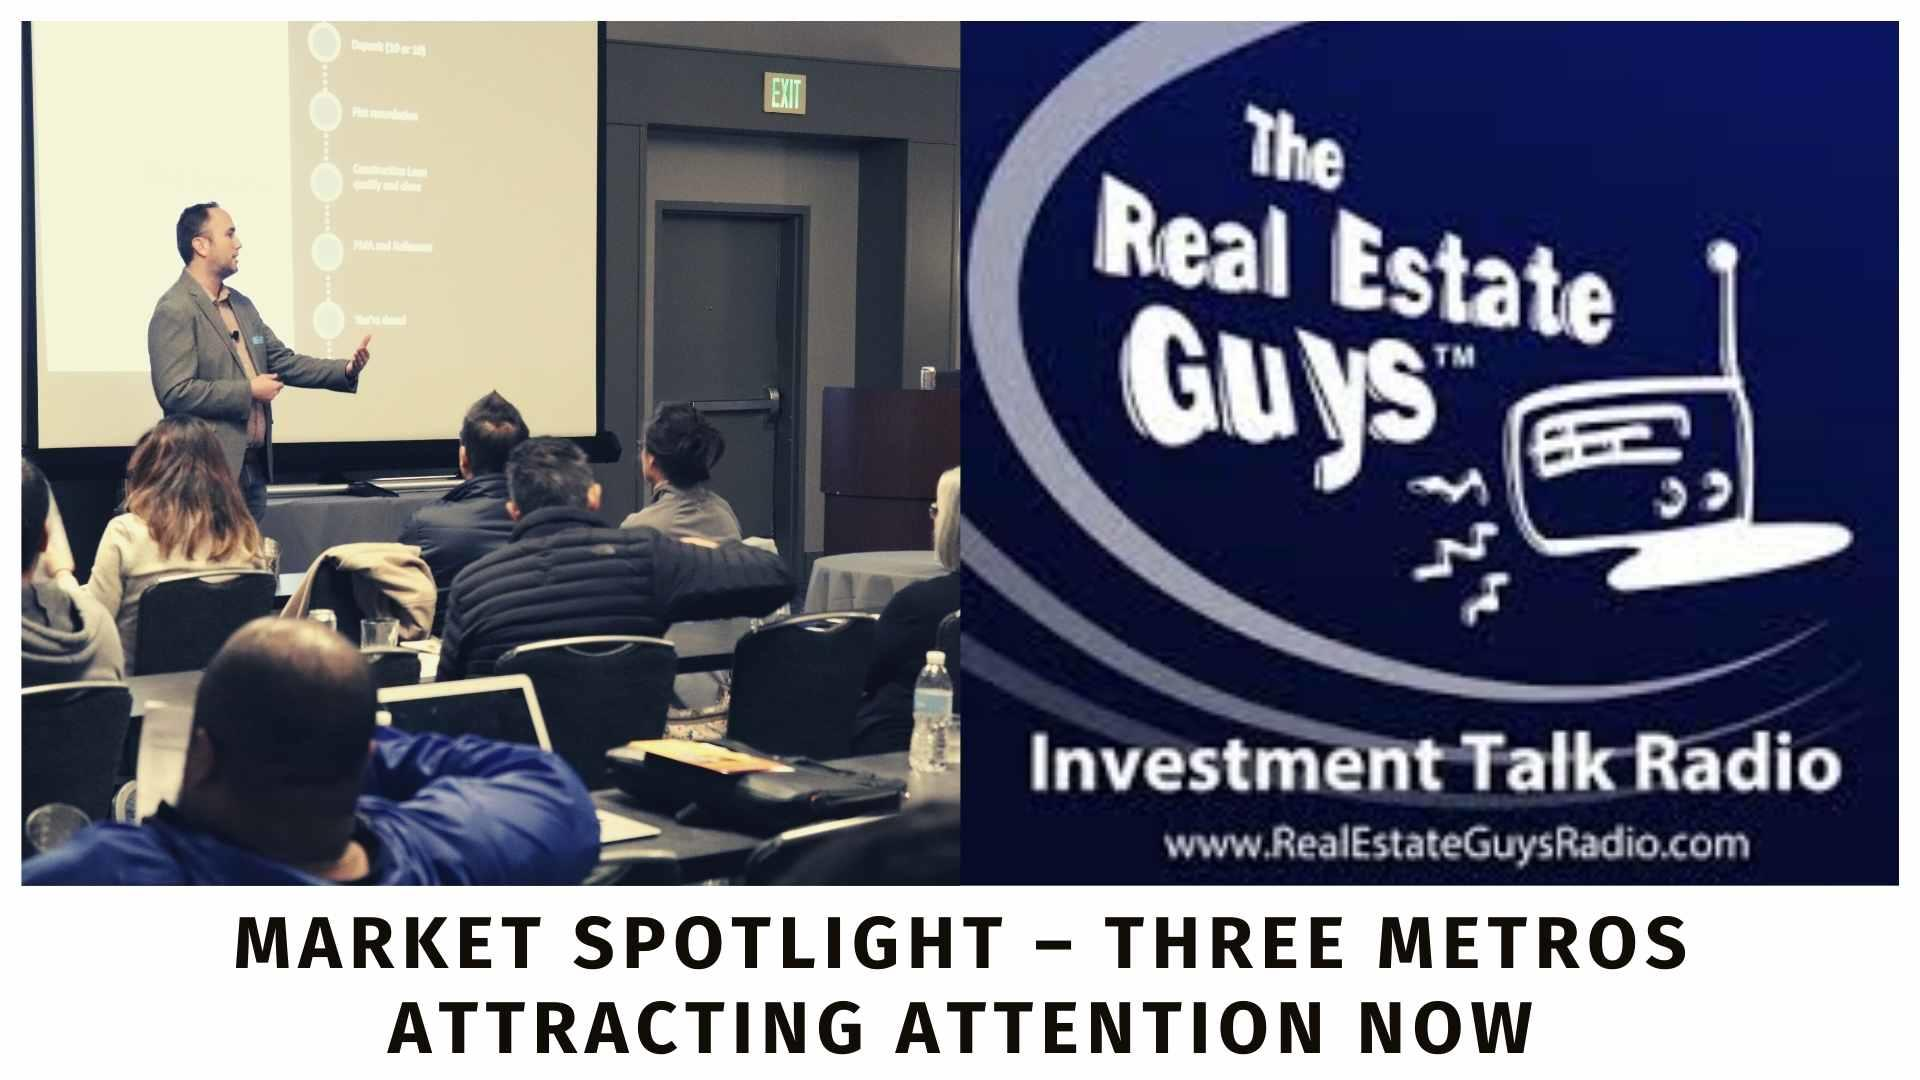 Steve Olson and the Real Estate Guys